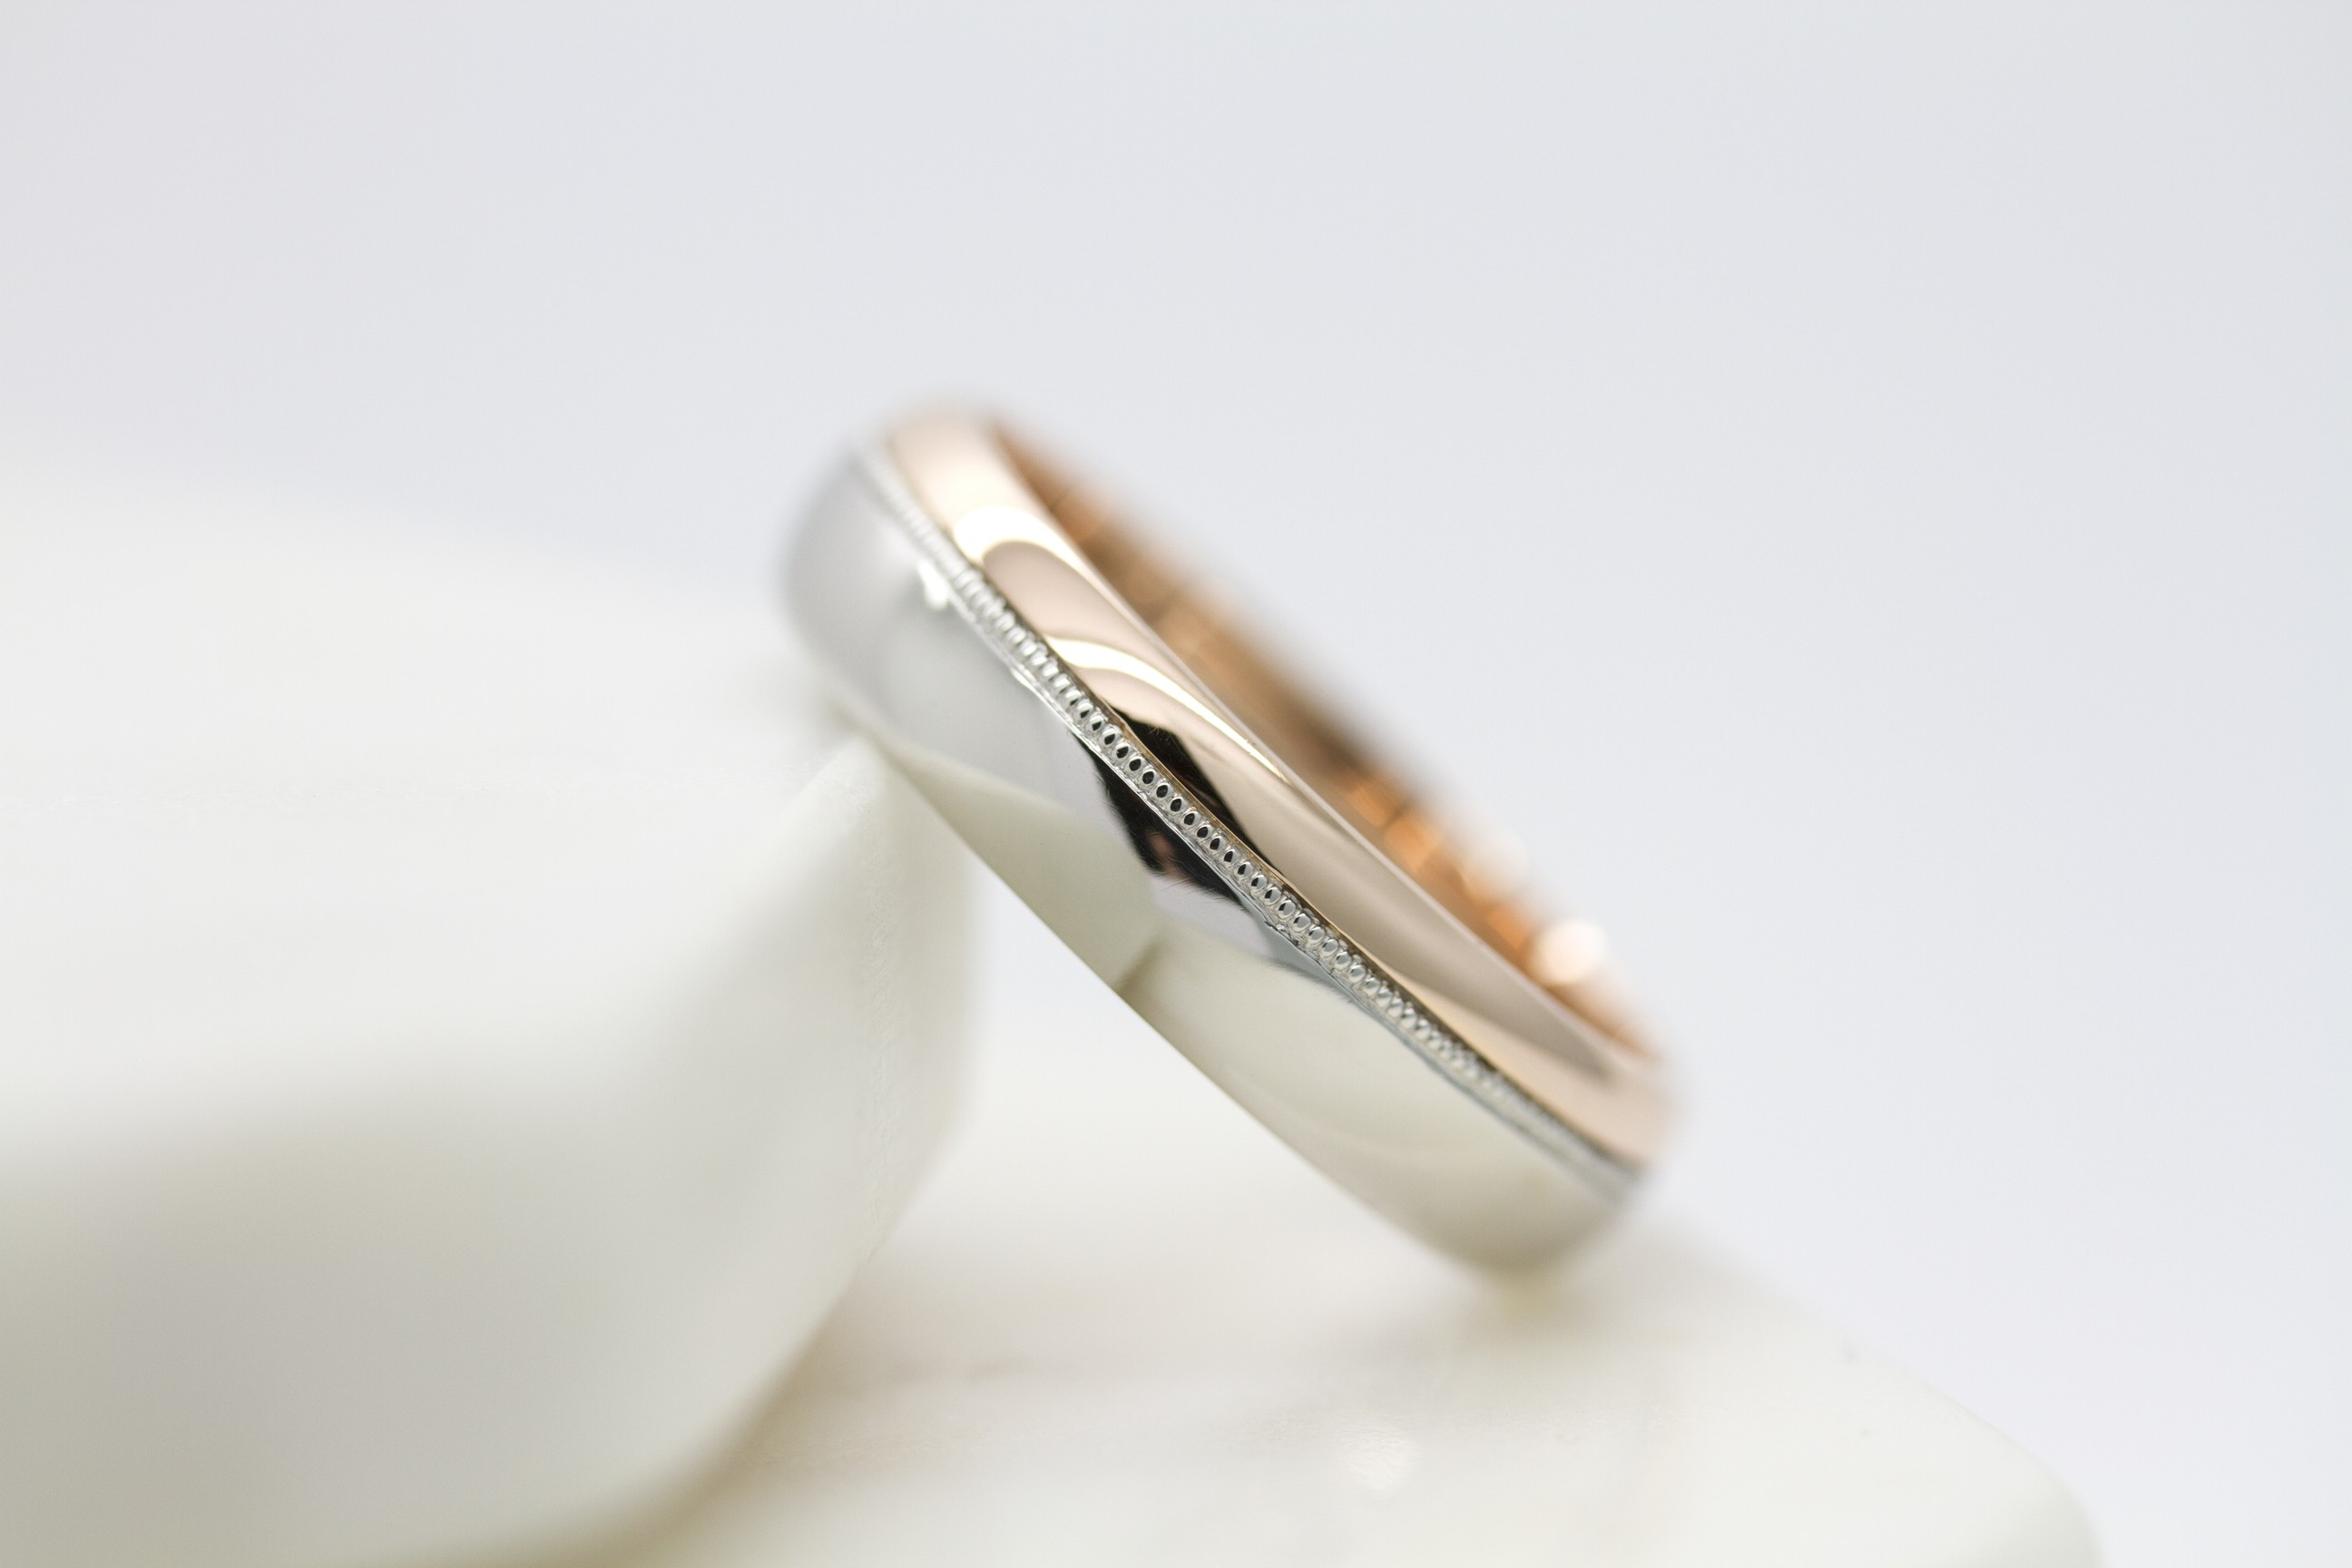 groom with line everlasting rocks wedding ring detailing rings collection at gents jewellers jewellery